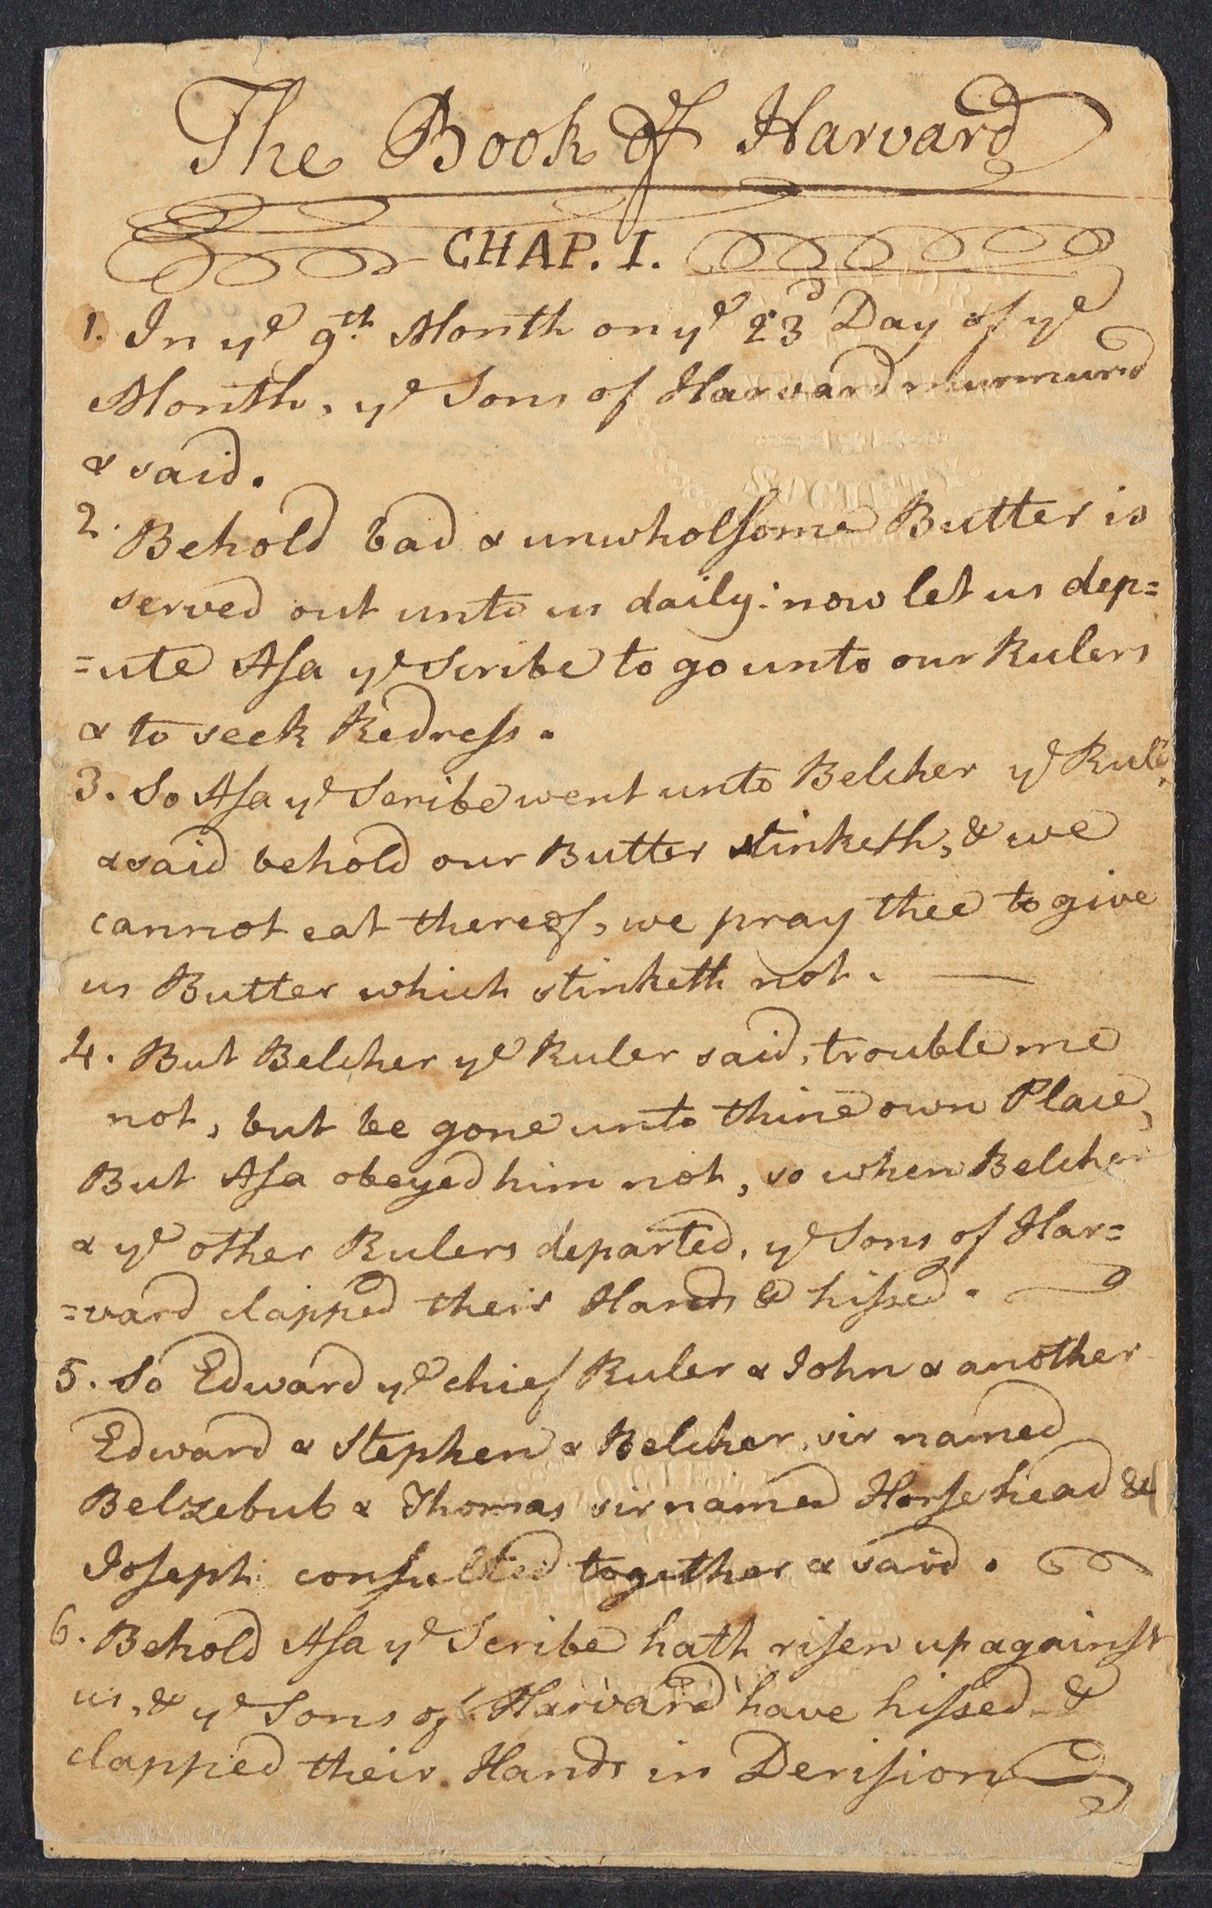 Manuscript copy of the book of Harvard, 1767